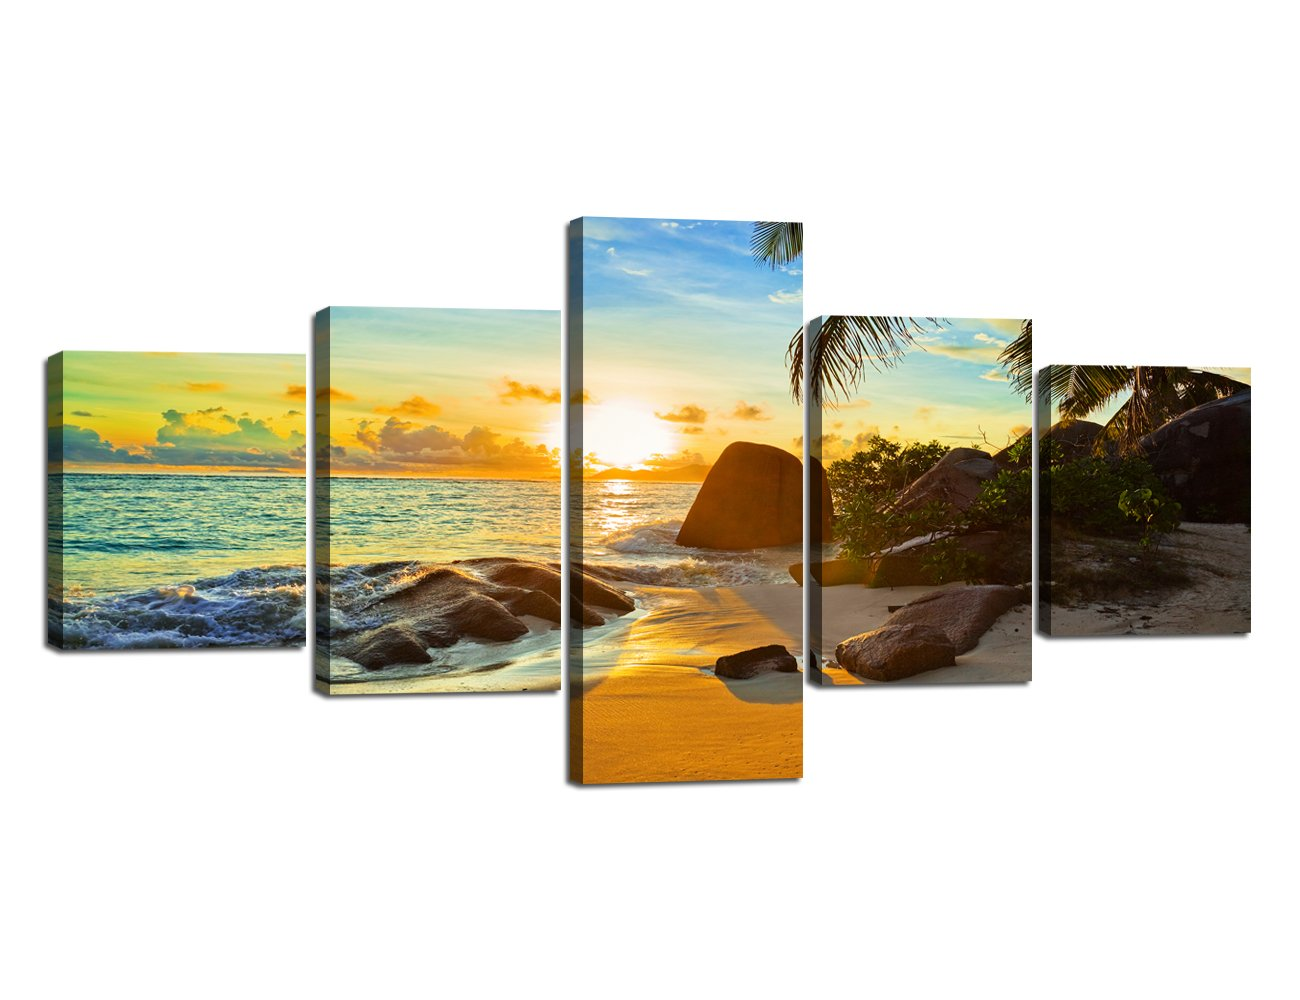 Ocean_25 Small Size Scene of Sea Waves Palm Tree Landscape Picture Modern Painting on Canvas 5 Piece Framed Wall Art for Living Room Bedroom Kitchen Home Decor Stretched Gallery Canvas Wrap Giclee Print (60''W x 32''H)